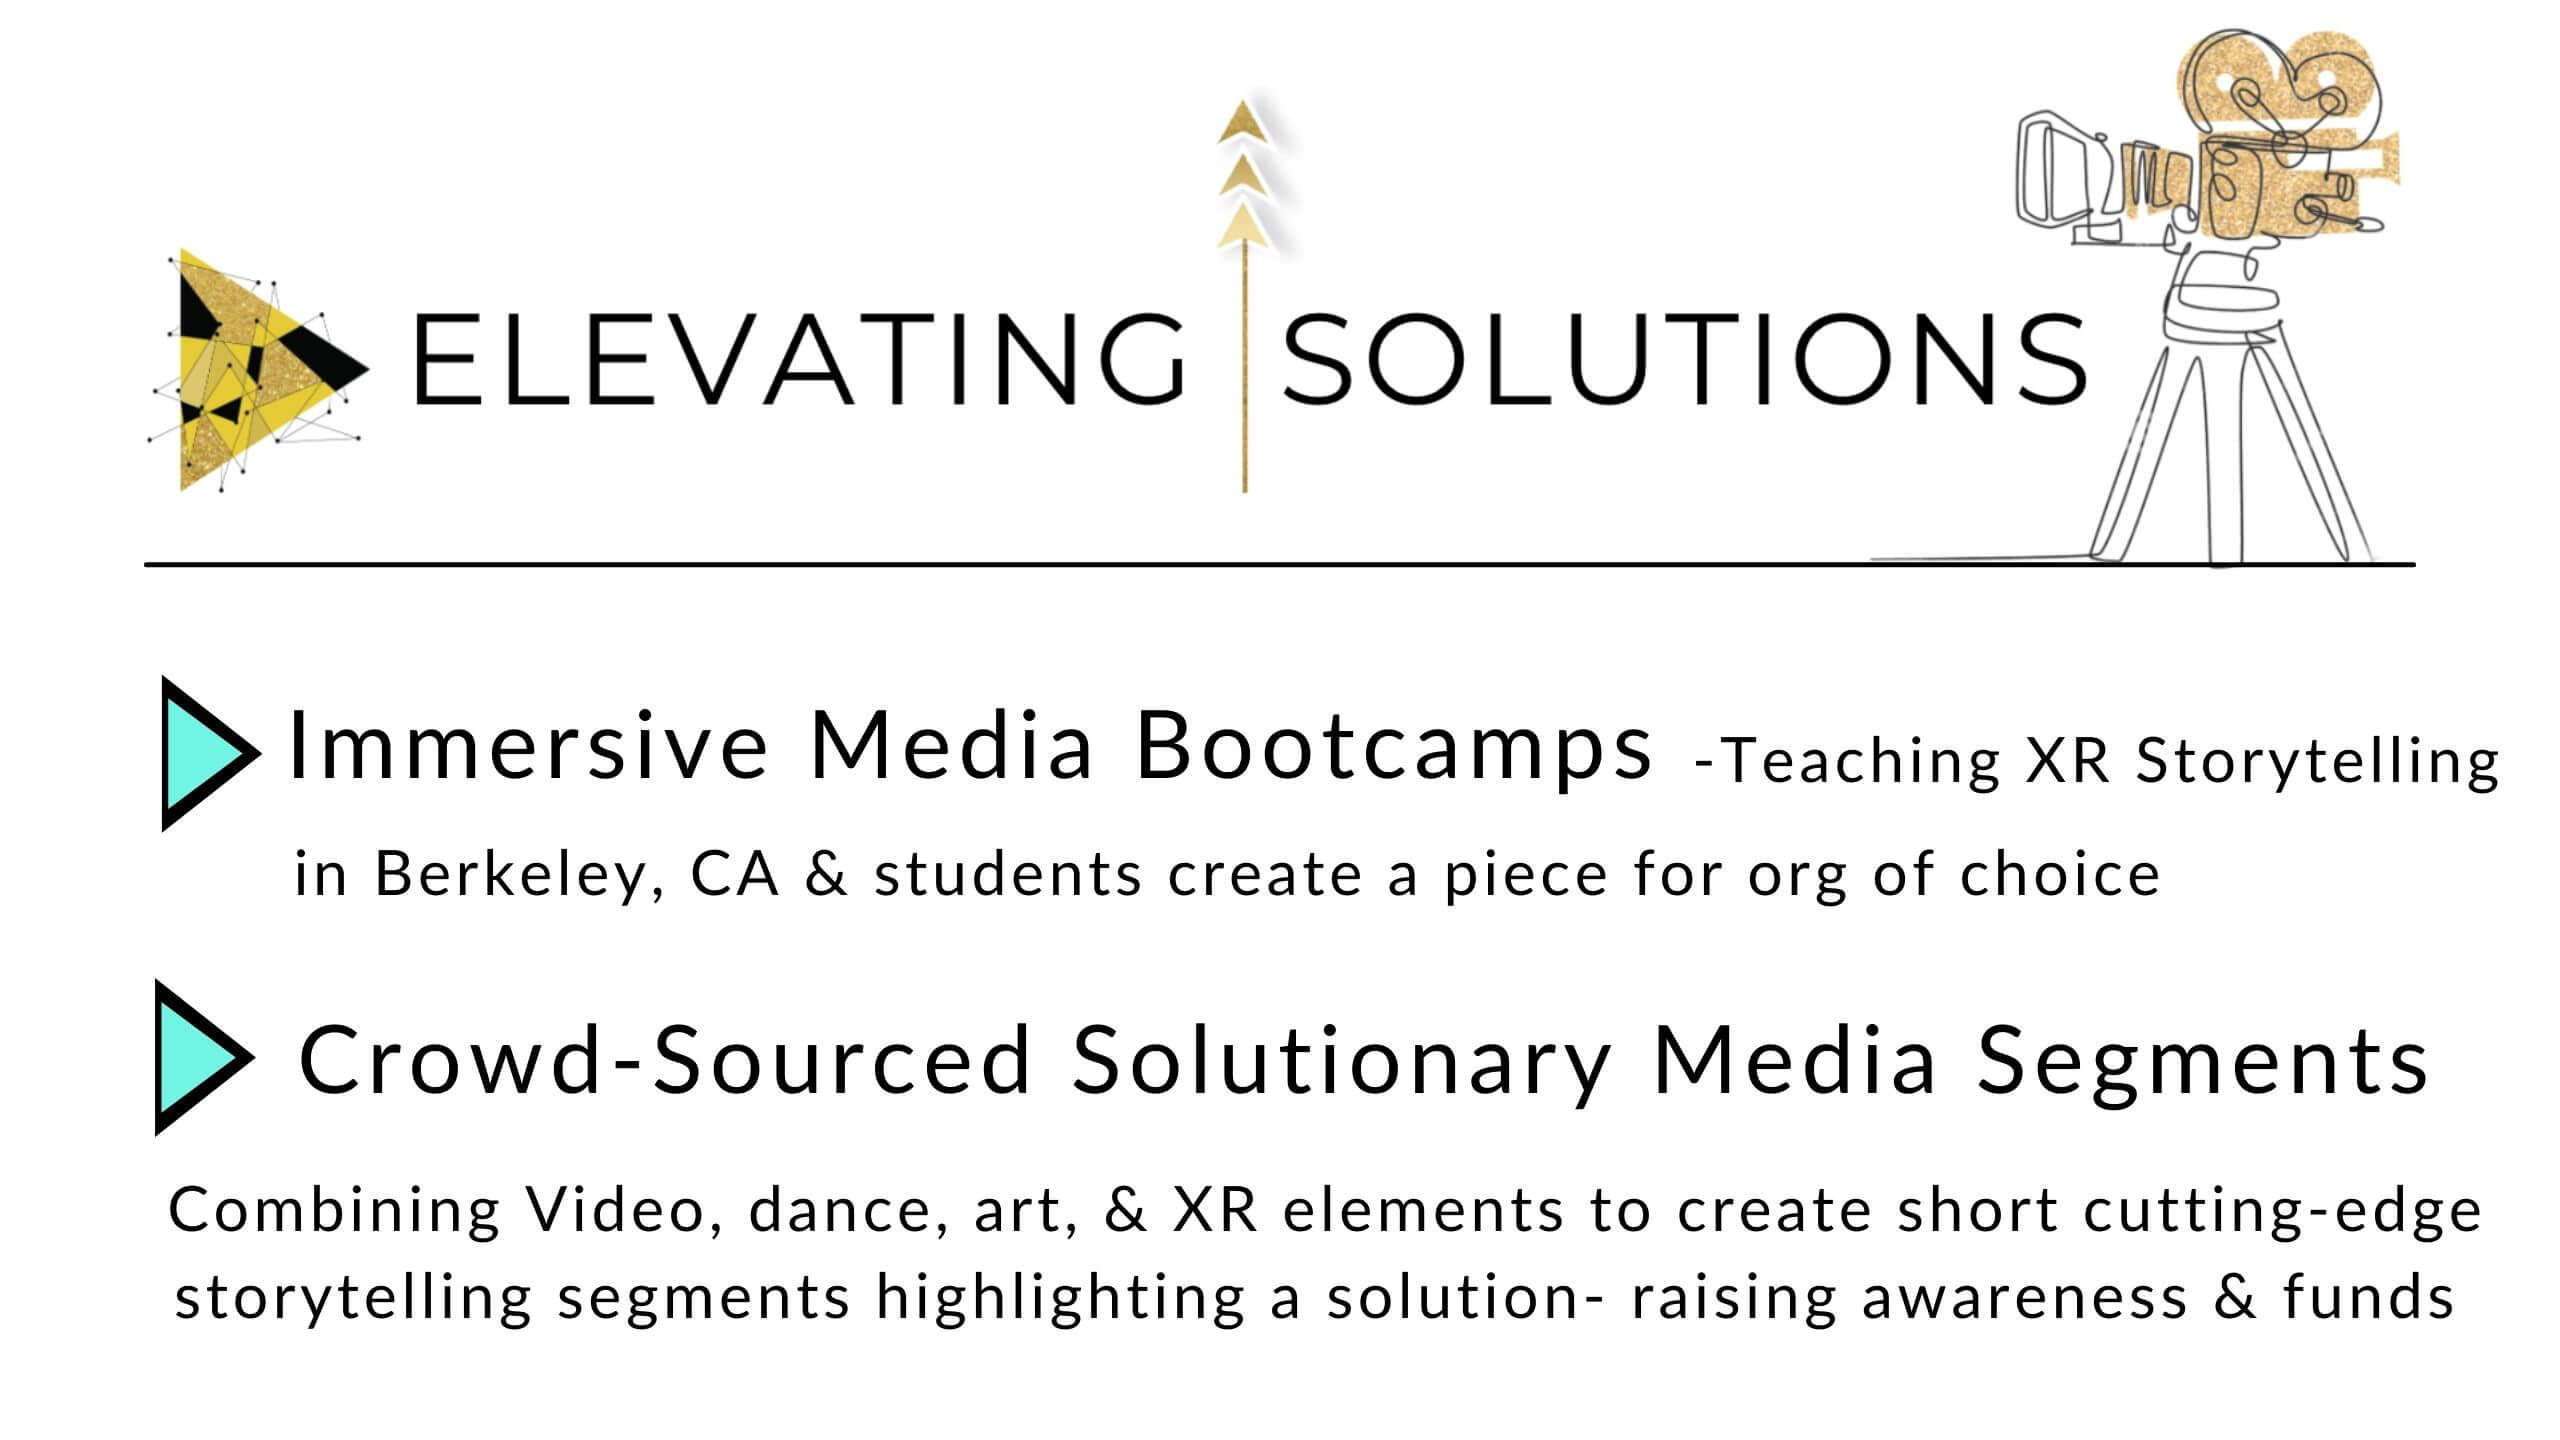 Elevating Solutions immersive media for good project